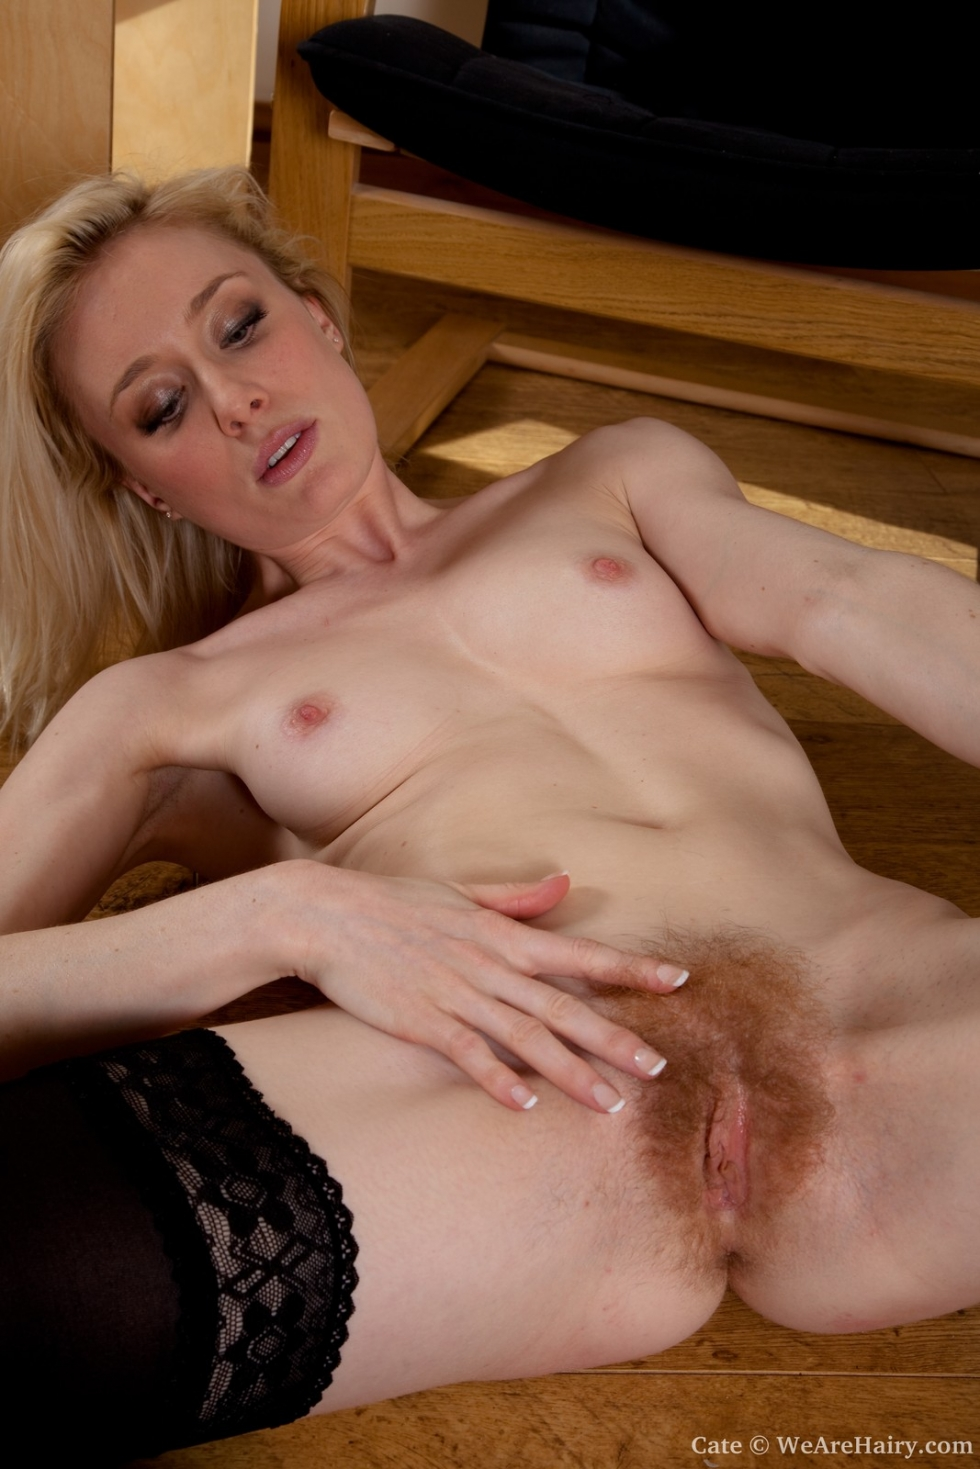 Hairy blonde bush movies free for that